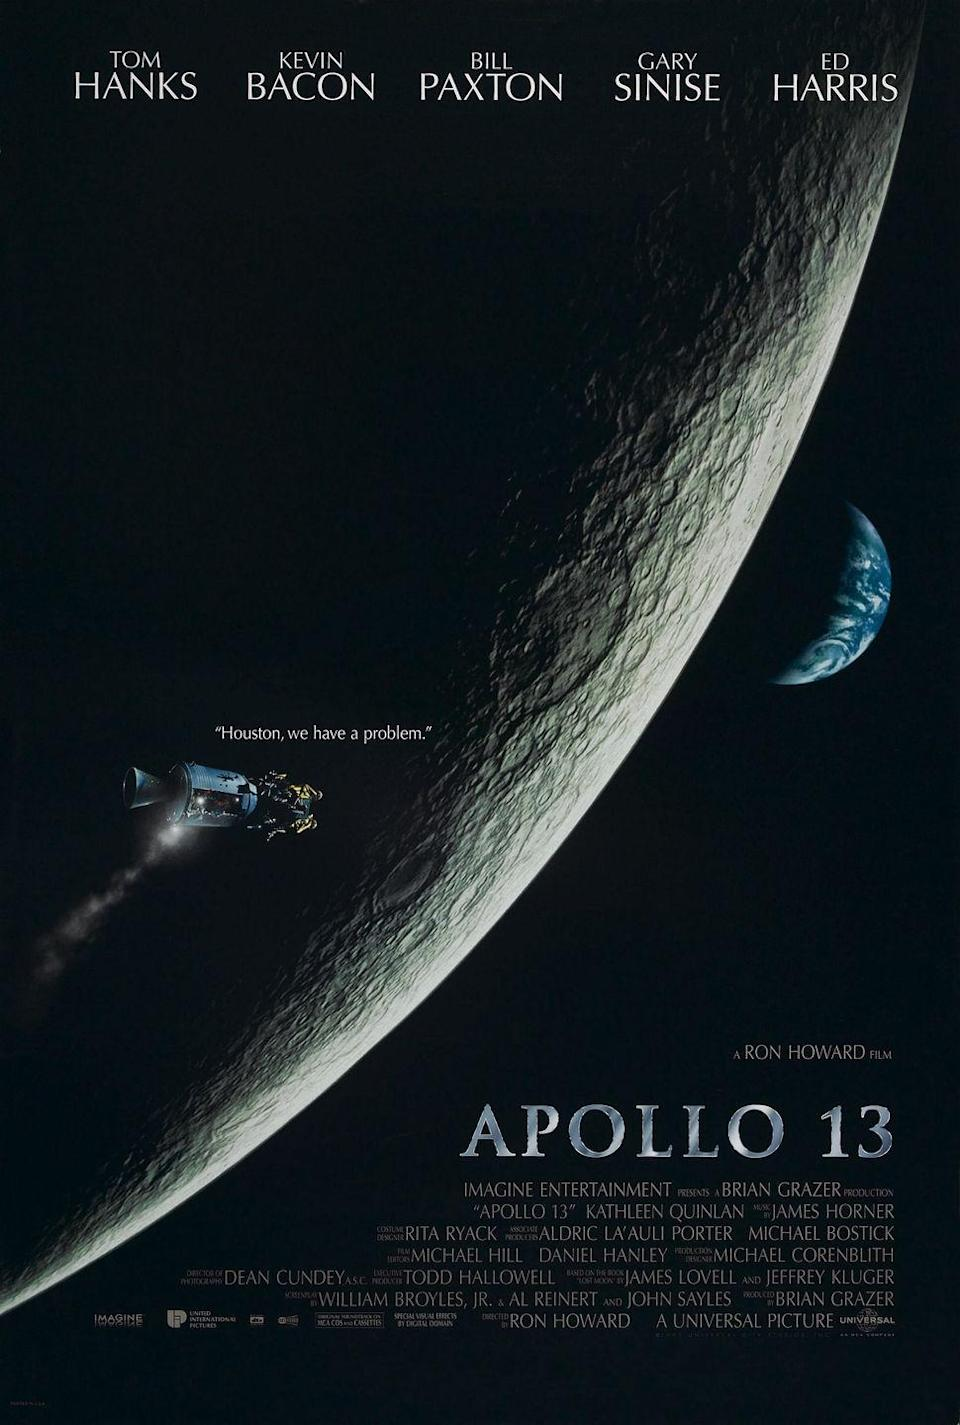 """<p>When this movie was released in 1995, <em>The New York Times</em> titled their review """"<a href=""""https://www.nytimes.com/1995/06/30/movies/film-review-apollo-13-a-movie-for-the-fourth-of-july.html"""" rel=""""nofollow noopener"""" target=""""_blank"""" data-ylk=""""slk:Apollo 13,' a Movie for the Fourth of July"""" class=""""link rapid-noclick-resp"""">Apollo 13,' a Movie for the Fourth of July</a>."""" It tells the story of the real-life space mission that went awry when the spacecraft is damaged, and how NASA worked to get the three astronauts onboard back to Earth safely. </p><p><a class=""""link rapid-noclick-resp"""" href=""""https://www.amazon.com/Apollo-13-Tom-Hanks/dp/B001JI5DRC/ref=sr_1_1?tag=syn-yahoo-20&ascsubtag=%5Bartid%7C10070.g.36156094%5Bsrc%7Cyahoo-us"""" rel=""""nofollow noopener"""" target=""""_blank"""" data-ylk=""""slk:STREAM NOW"""">STREAM NOW</a><br></p>"""